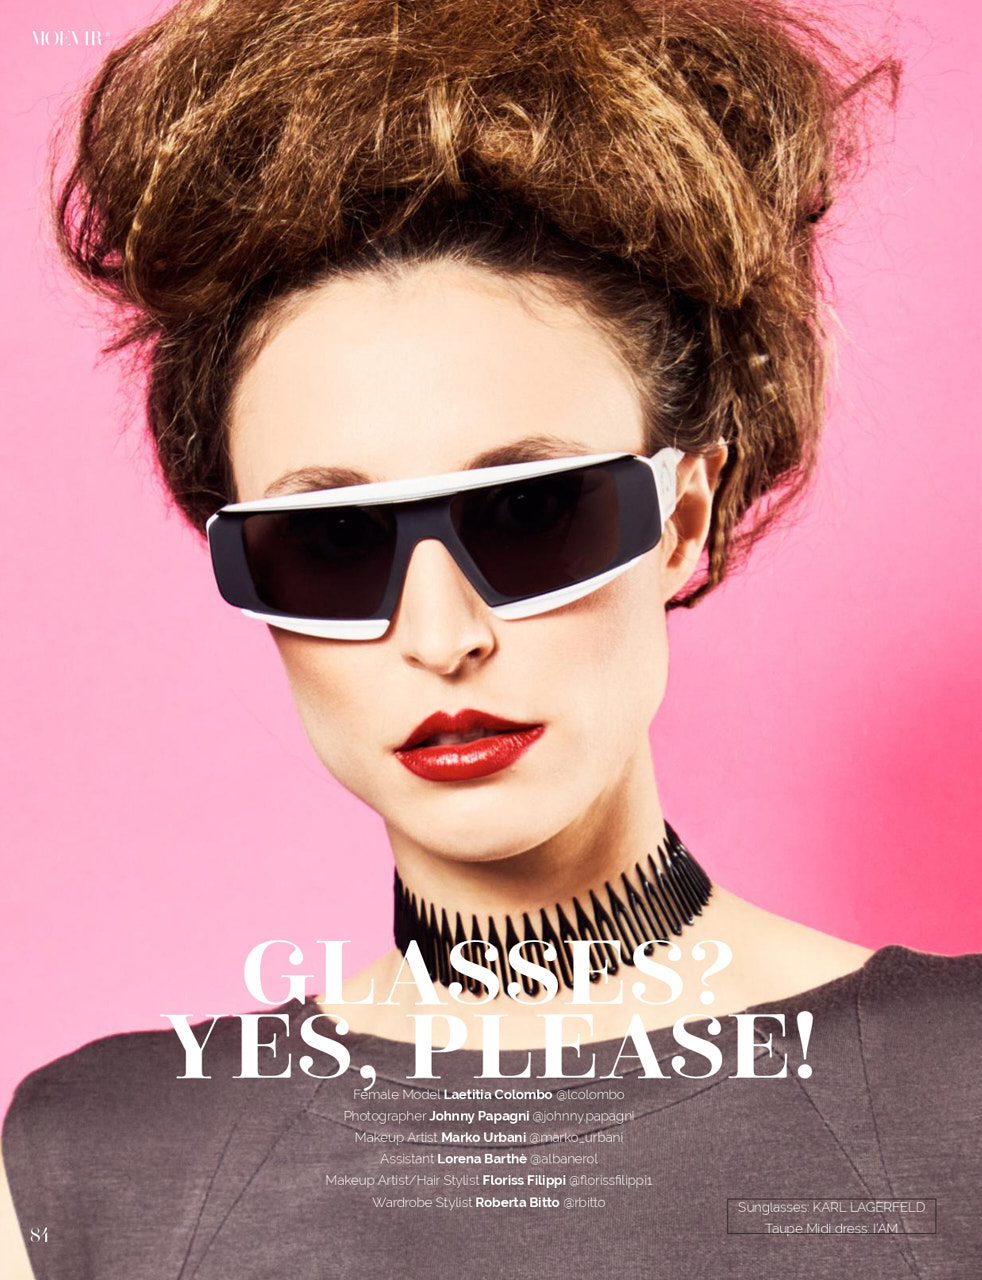 Editorial: Glasses? Yes but with style!